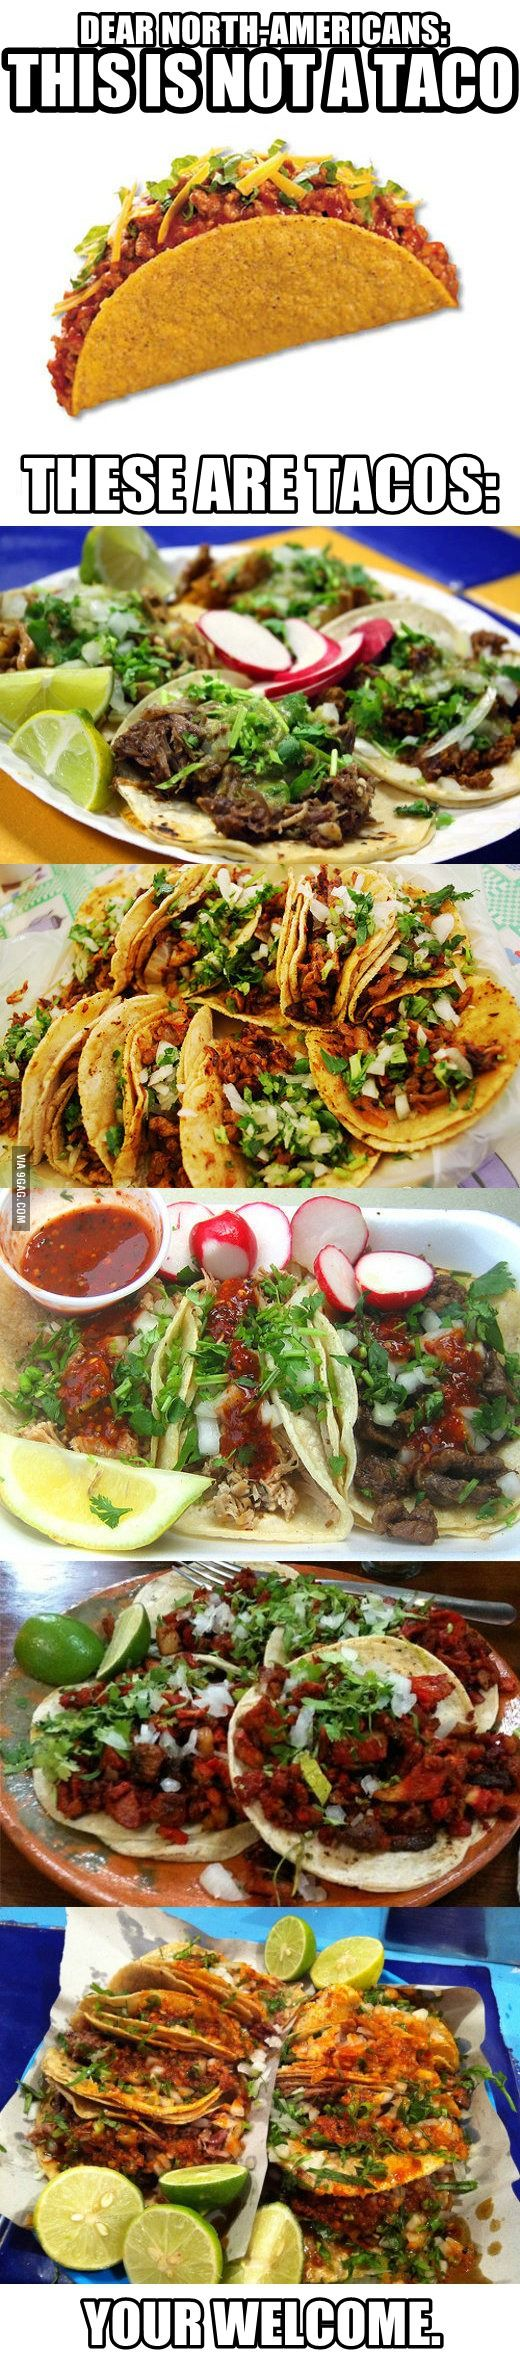 GRACIAS... alguien que les dice! Esos son tacos de los buenos, no esos que parecen tostadas THANKS... somebody tells them! Those are real and delicious tacos, no those with that tostada, that's not a tortilla, tortillas are soft